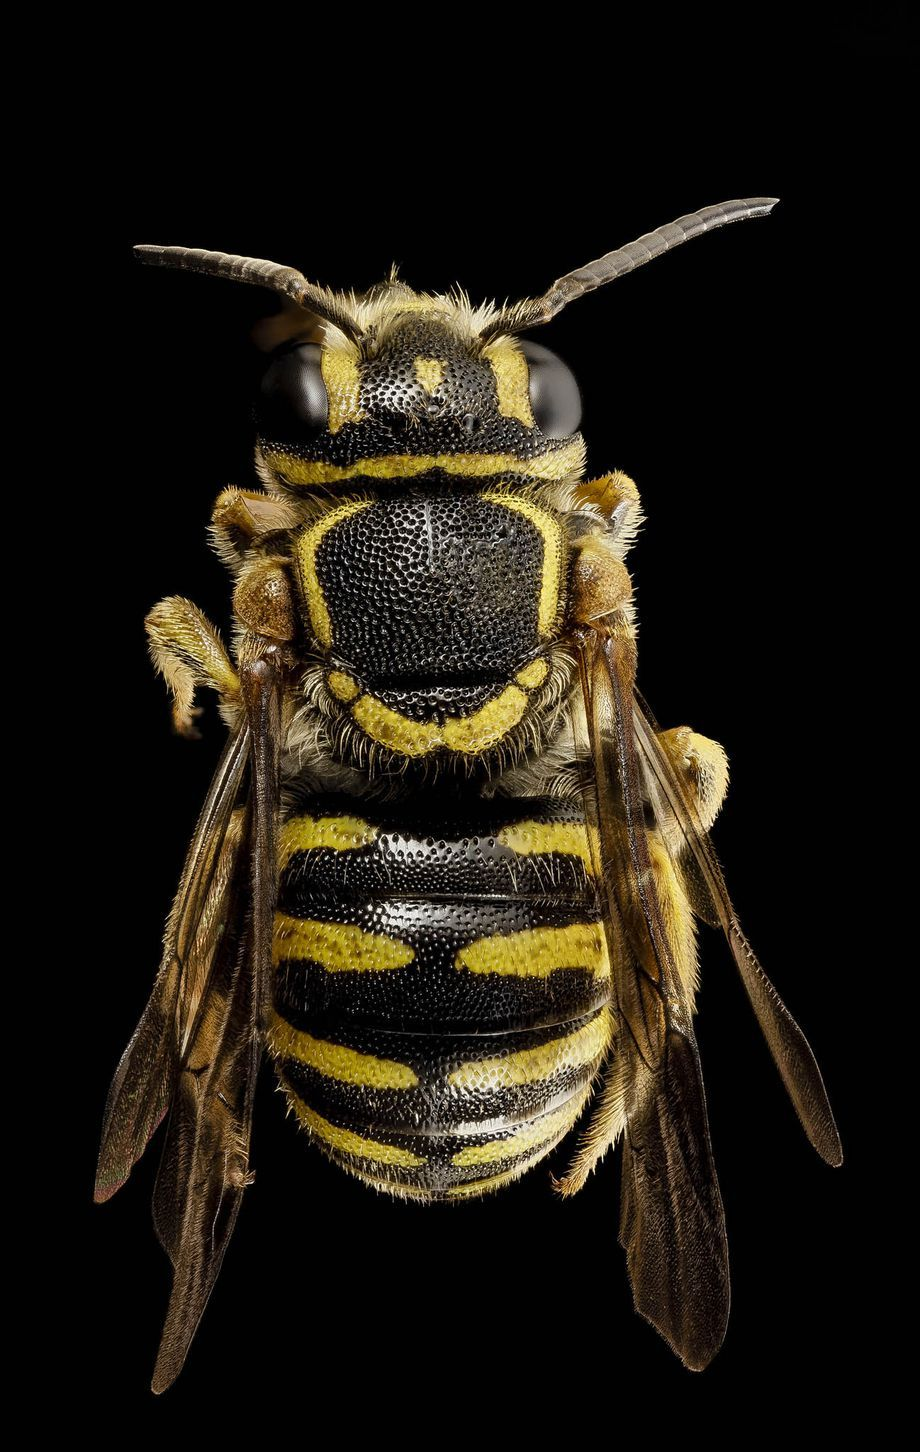 """World Bee Day: 20 photos of bees that will make you say """"damn, bees are beautiful"""" - Vox"""